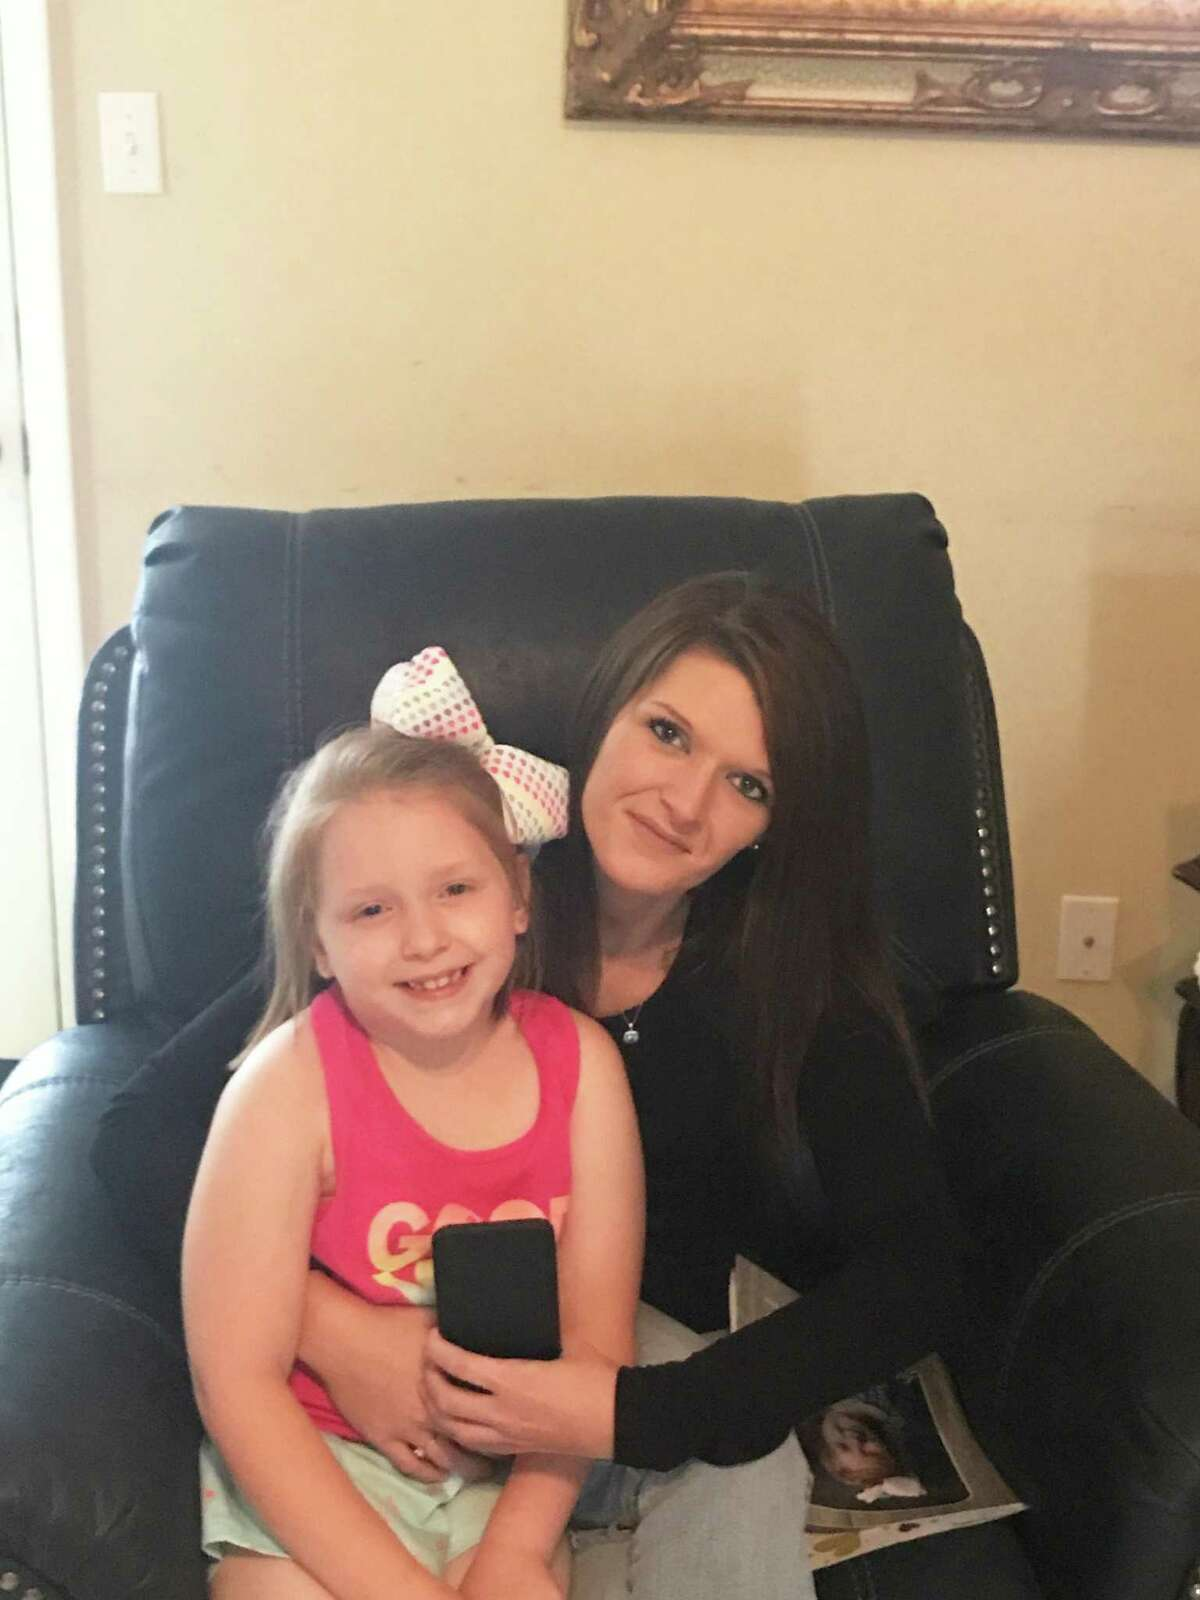 An undated photo of Bailey Finch of Columbus, Miss. (R). Finch sued Norwalk, Conn.-based Pepperidge Farm on Aug. 8, 2018, blaming a salmonella infection she contracted on Goldfish crackers that the company recalled in July 2018, with Pepperidge Farm stating it does not believe the product caused Finch's illness.